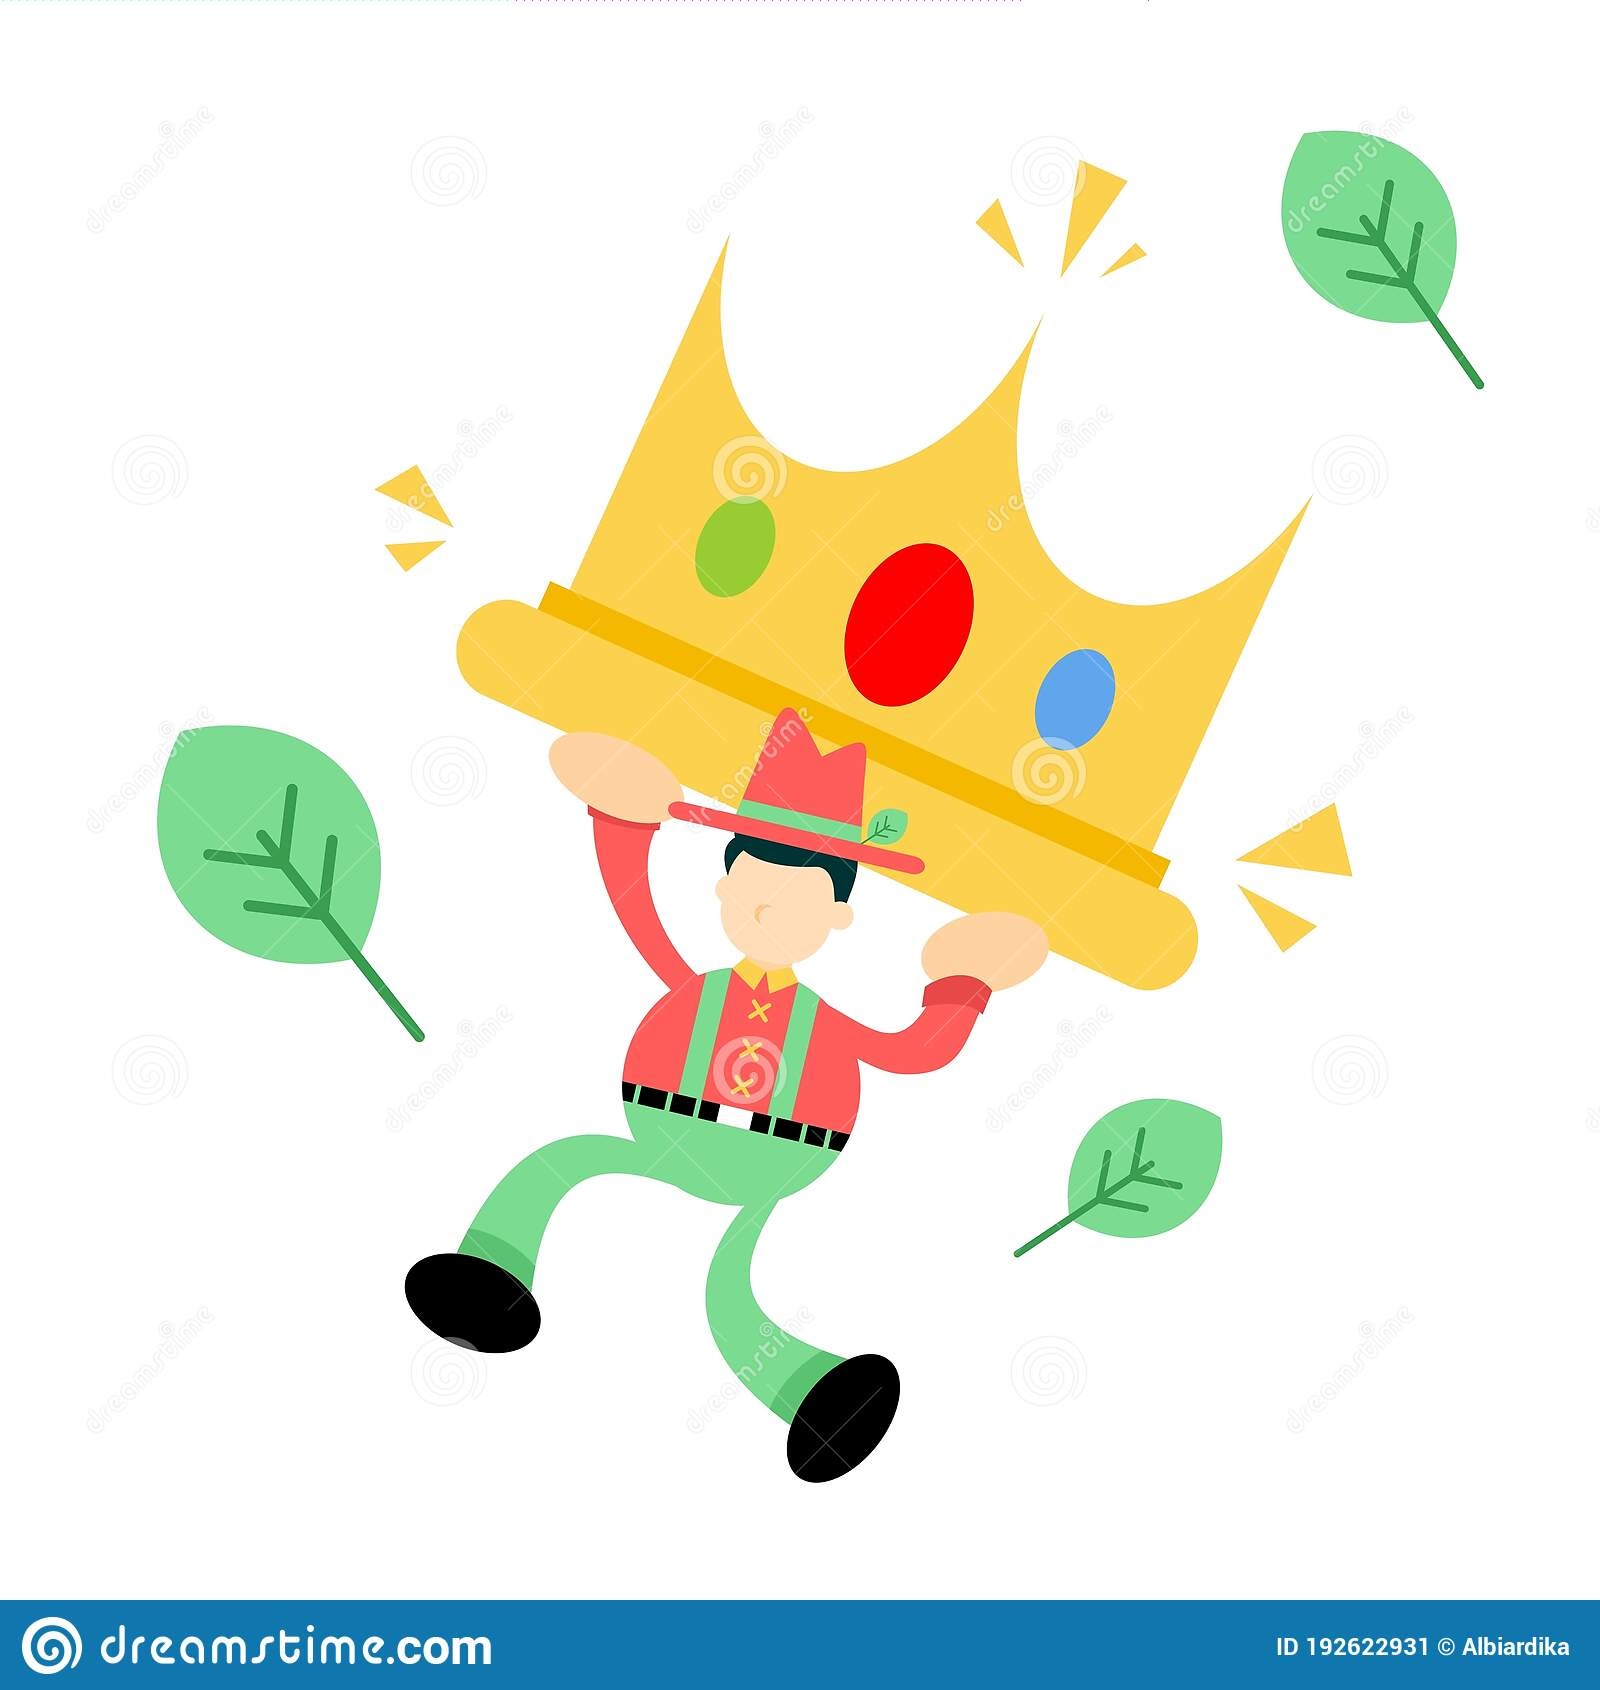 Vector Illustration Farmer And Big Size King Crown Flat Design Cartoon Style Stock Vector Illustration Of Isolated Jewel 192622931 Cartoon crown smiley illustrations & vectors. vector illustration farmer and big size king crown flat design cartoon style stock vector illustration of isolated jewel 192622931